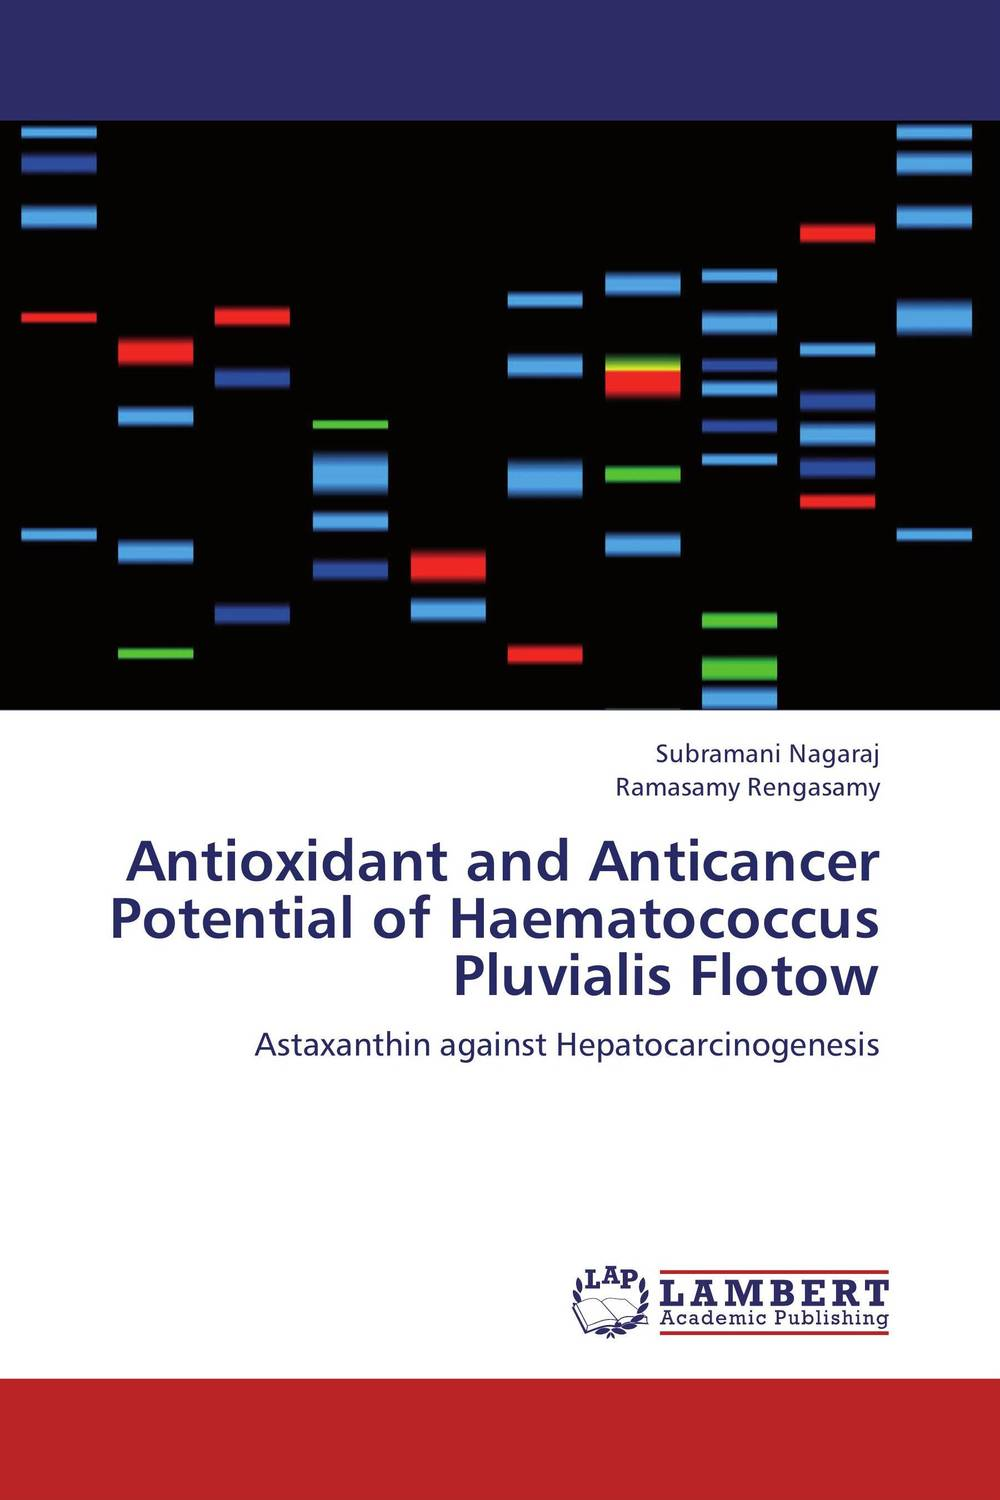 Antioxidant and Anticancer Potential of Haematococcus Pluvialis Flotow rakesh kumar ameta and man singh quatroammonimuplatinate and anticancer chemistry of platinum via dfi